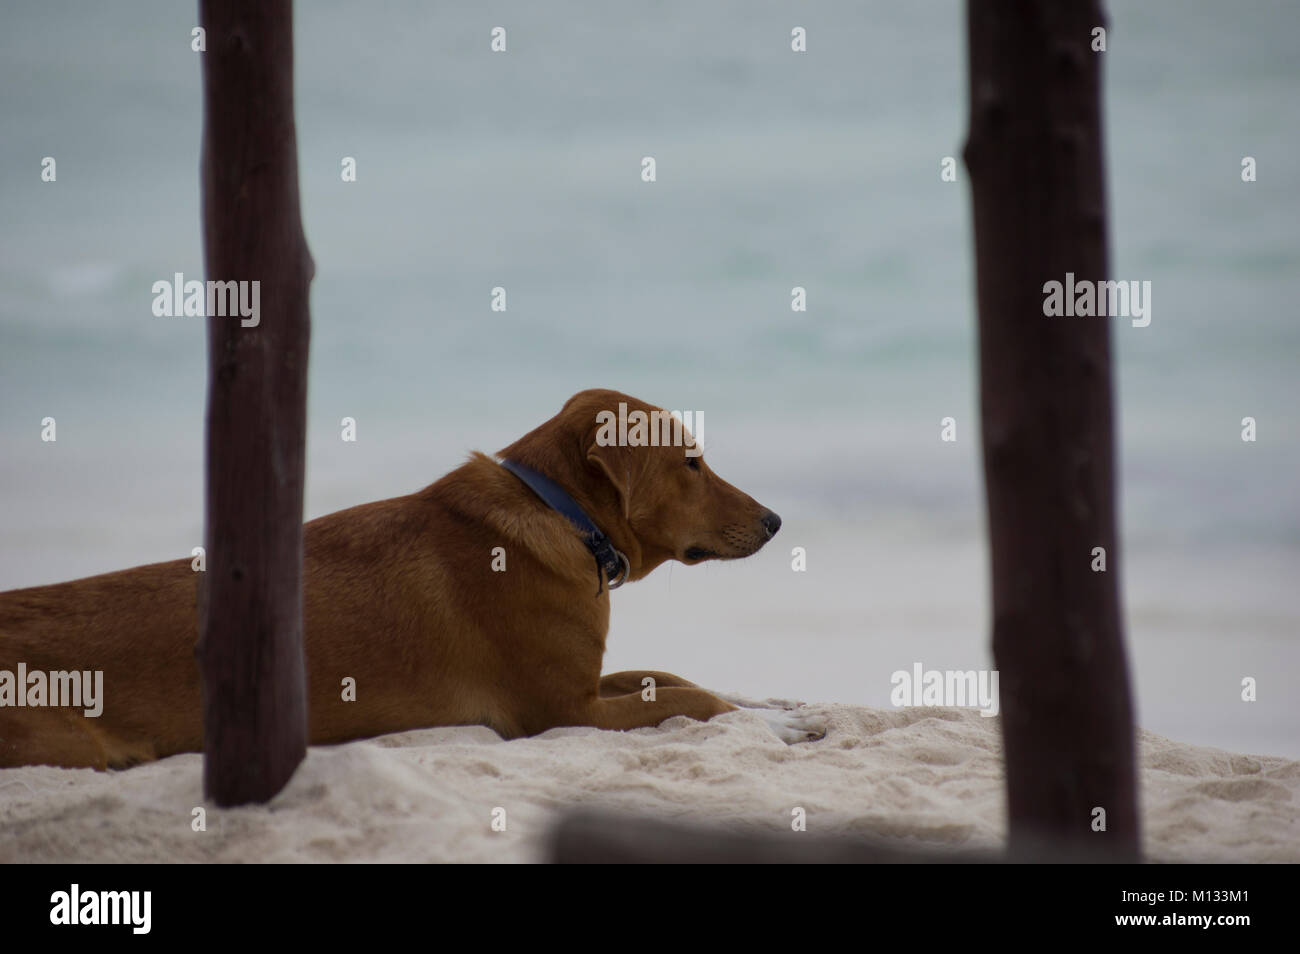 A dog resting on the sand gazes thoughtfully at the turquoise waters of the Indian Ocean sea in Nungwi, Zanzibar, - Stock Image